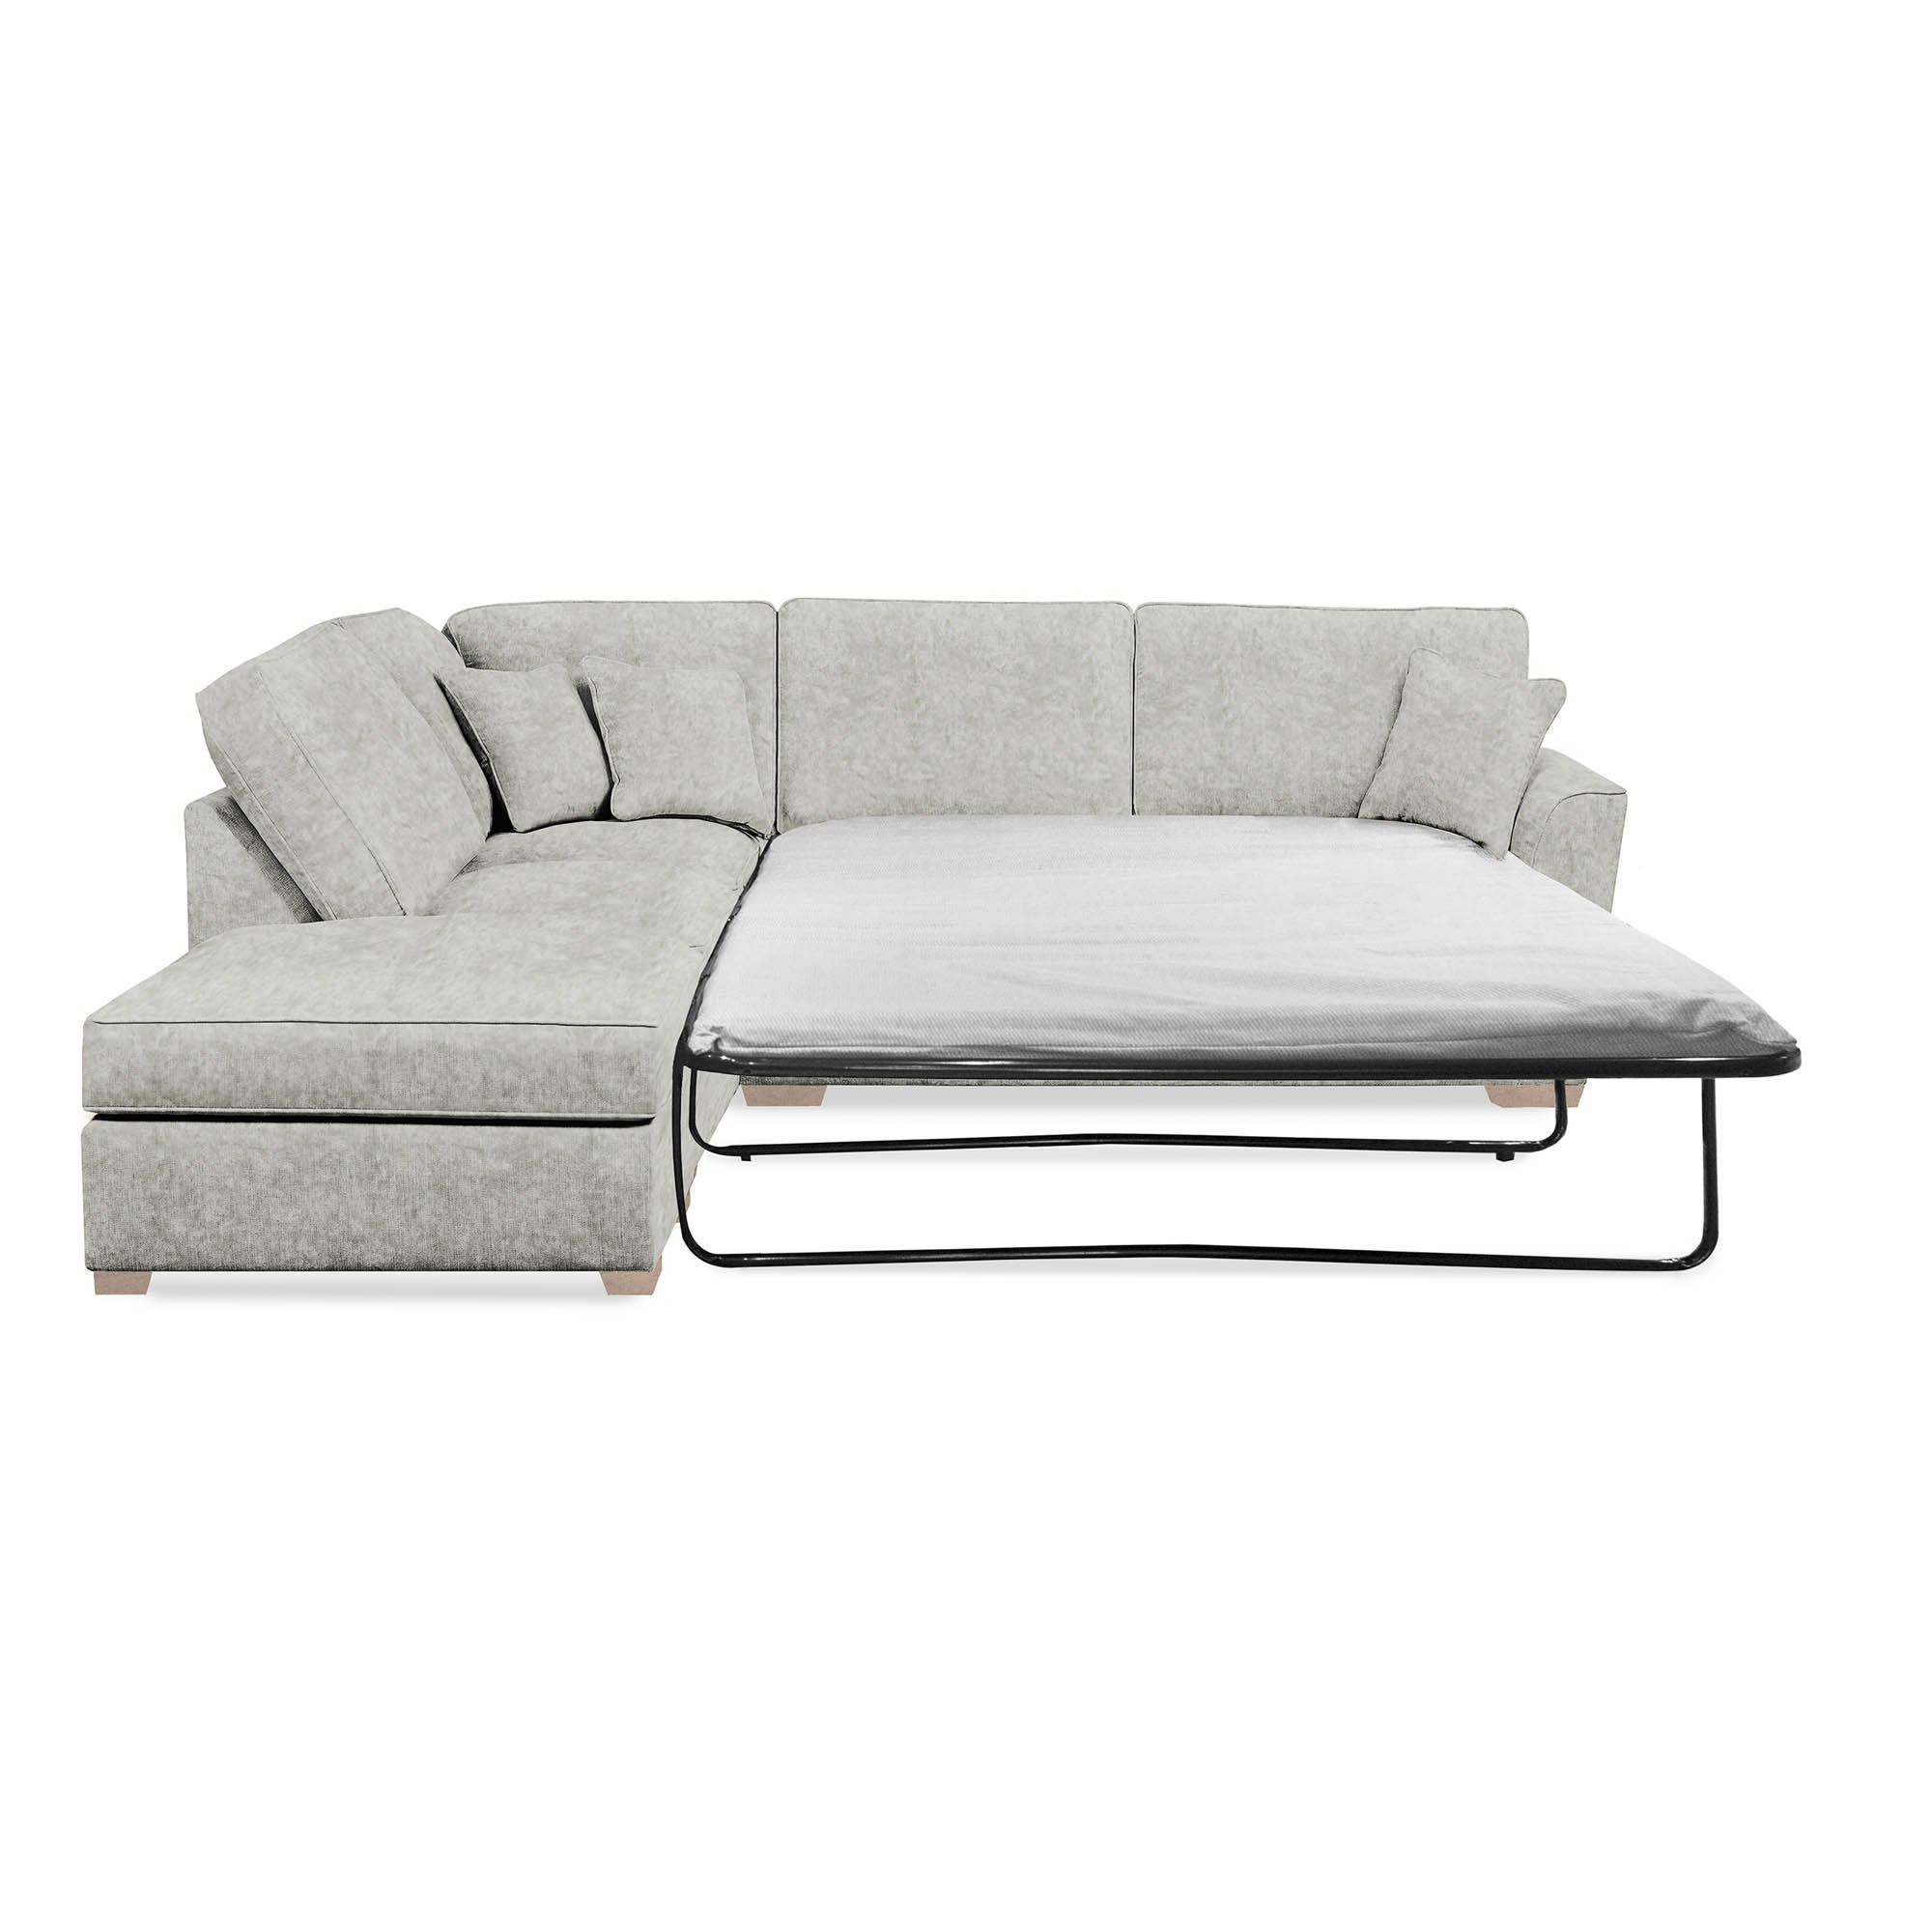 Click to view product details and reviews for Grosvenor Left Hand Corner Sofa Bed Starlet Silver.